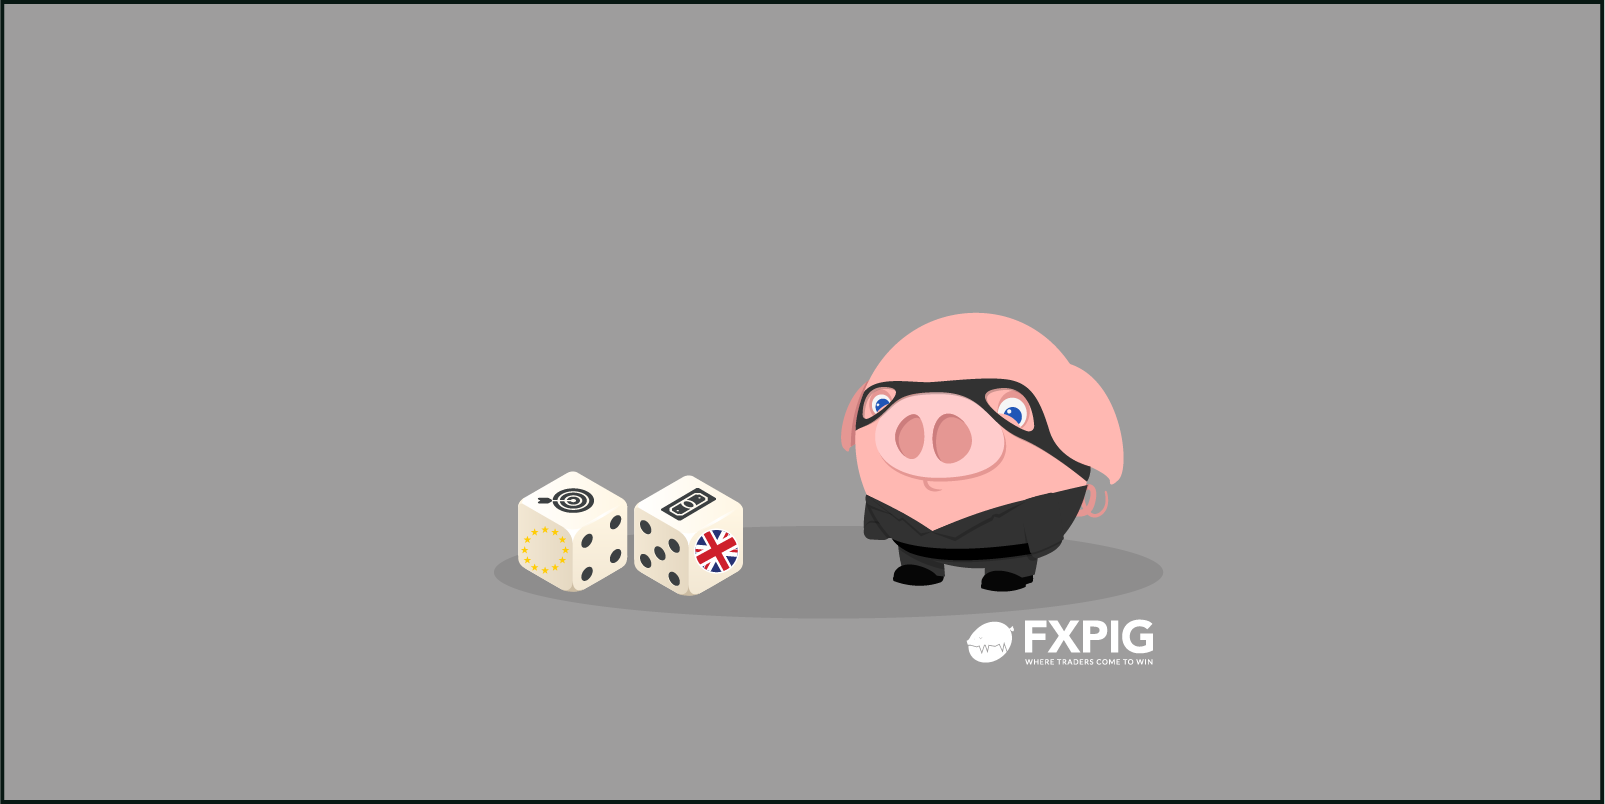 Forex_week_ahead_economic_reopening-continues_FXPIG